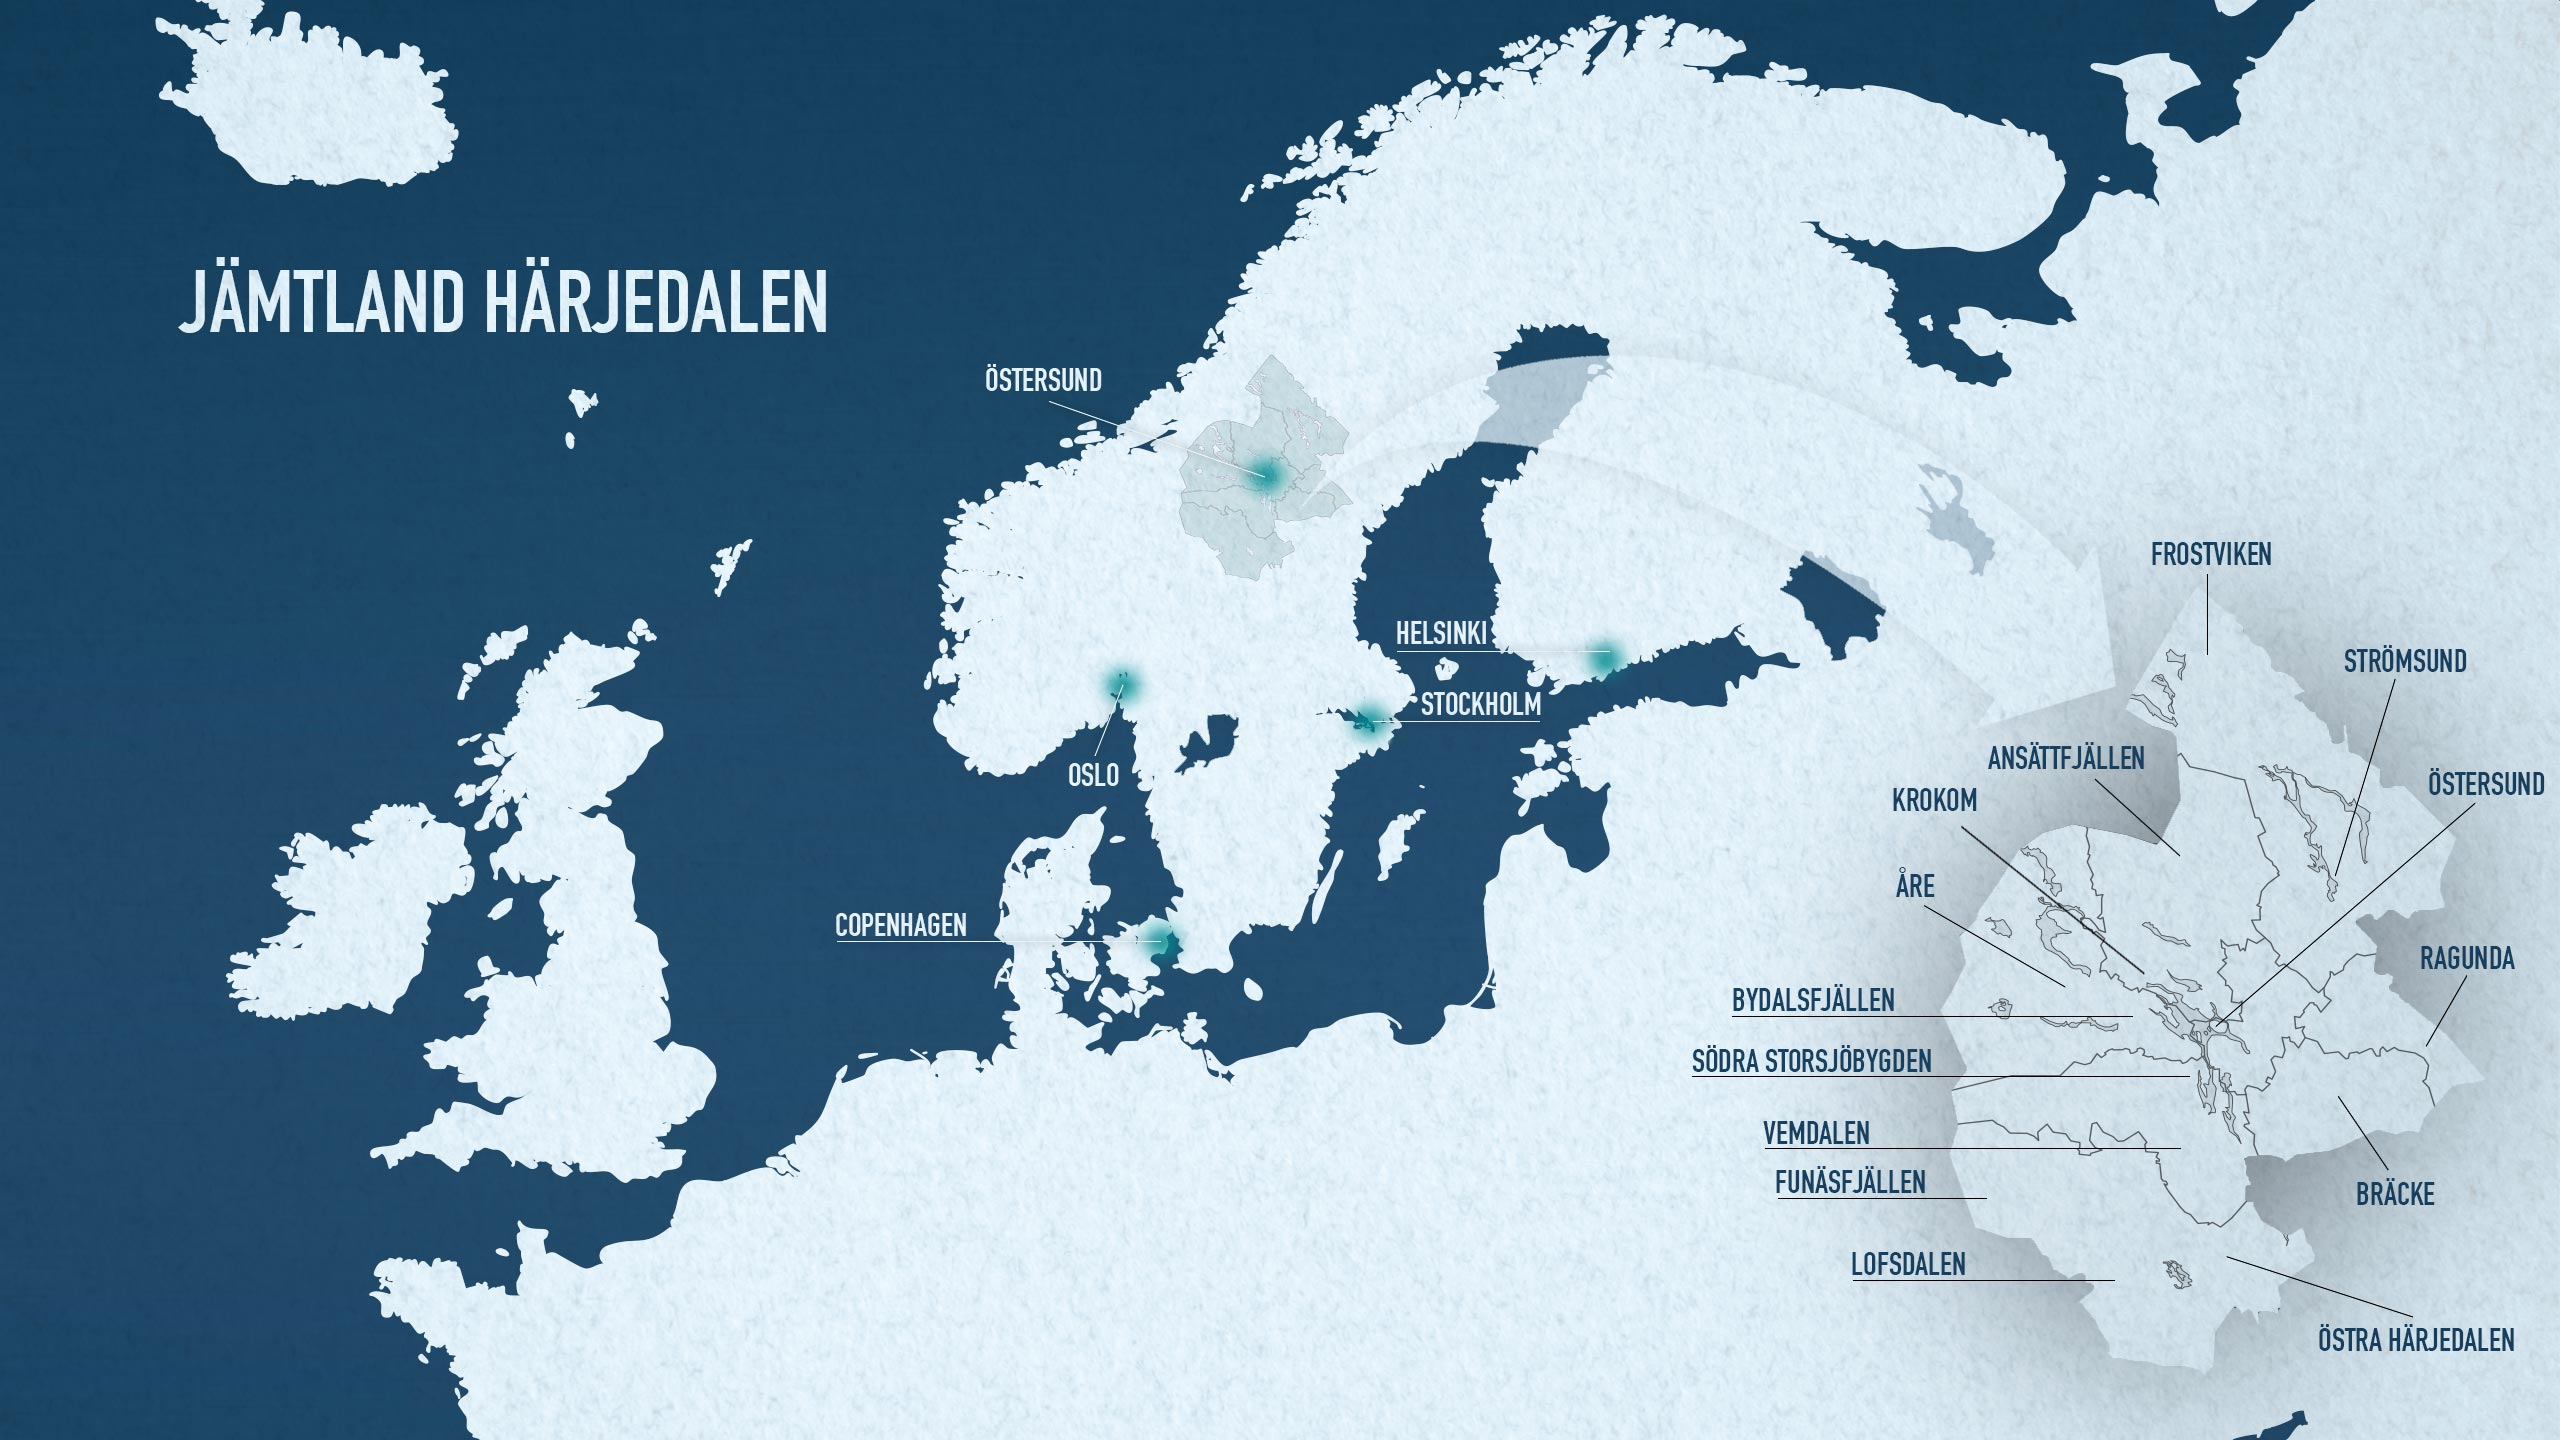 Map of the destinations in Jämtland Härjedalen and location in Europe